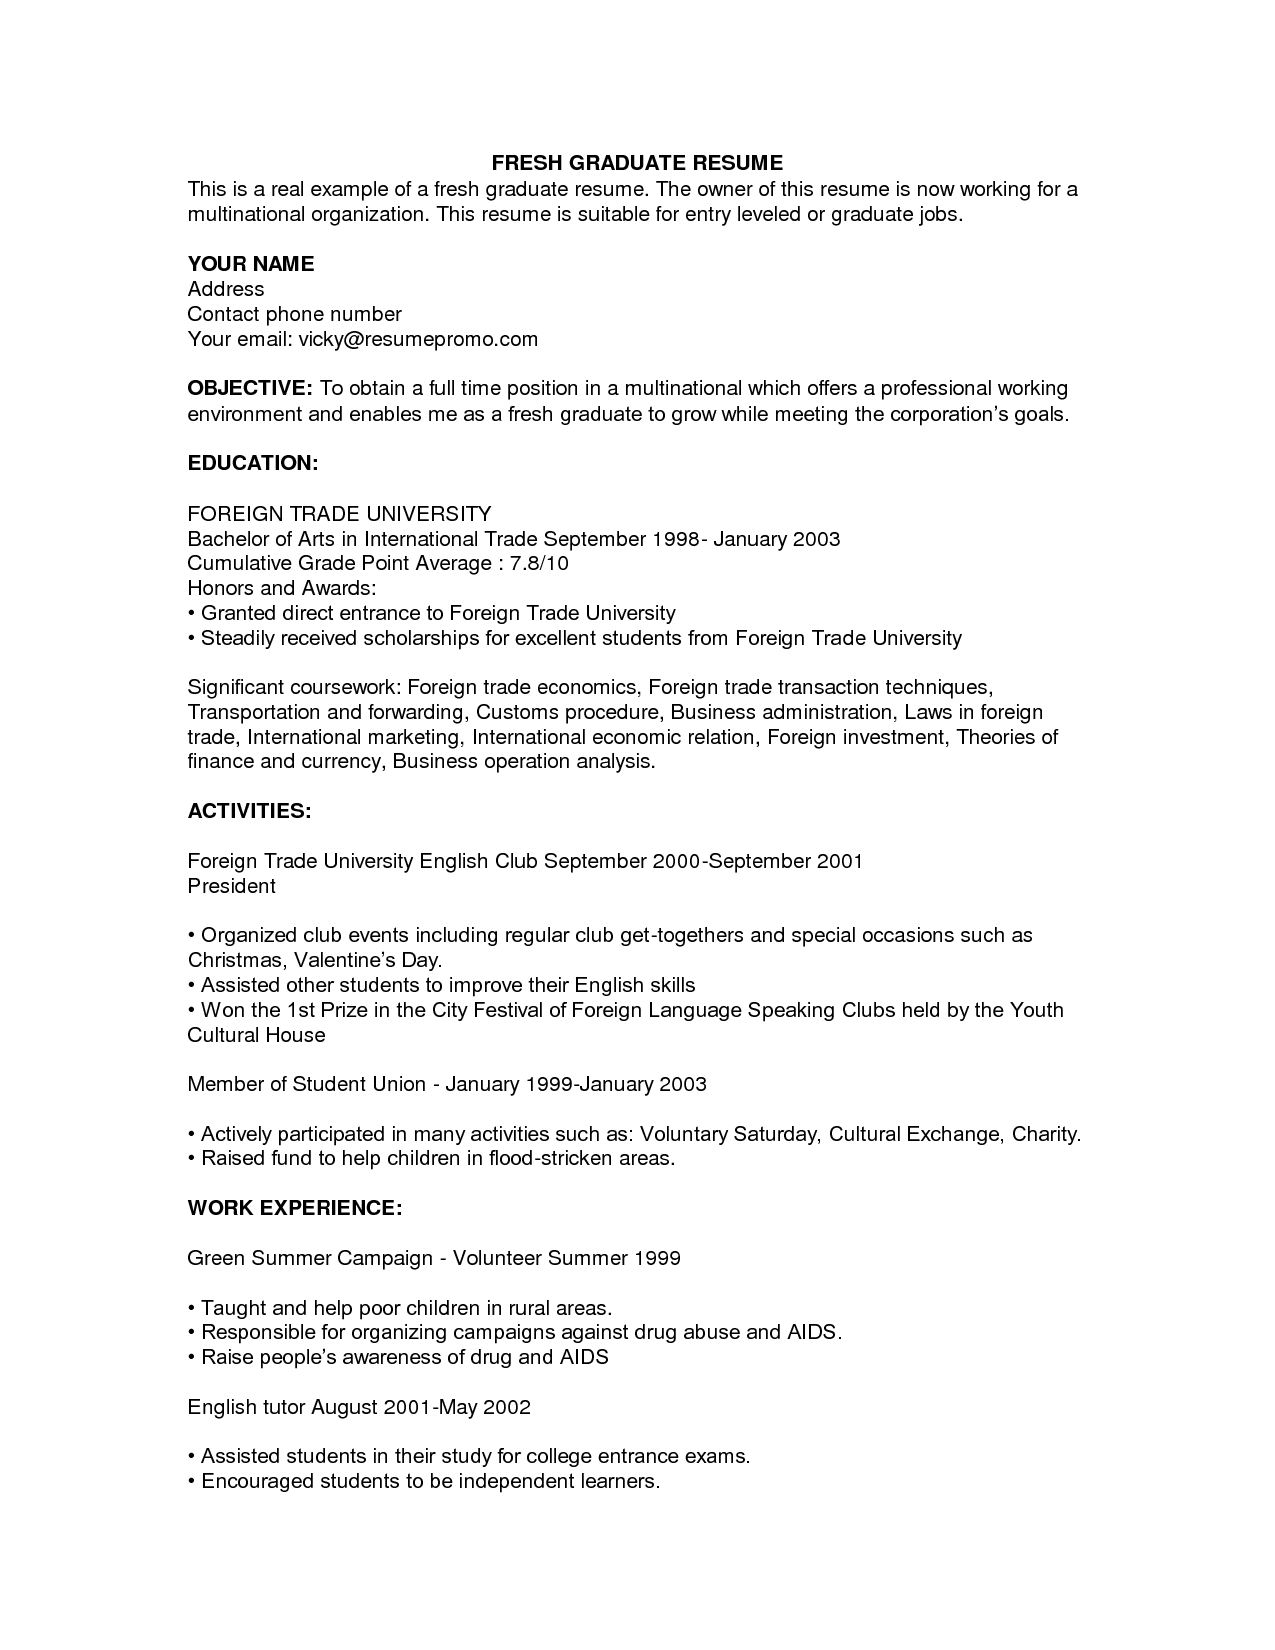 example of resume for fresh graduate